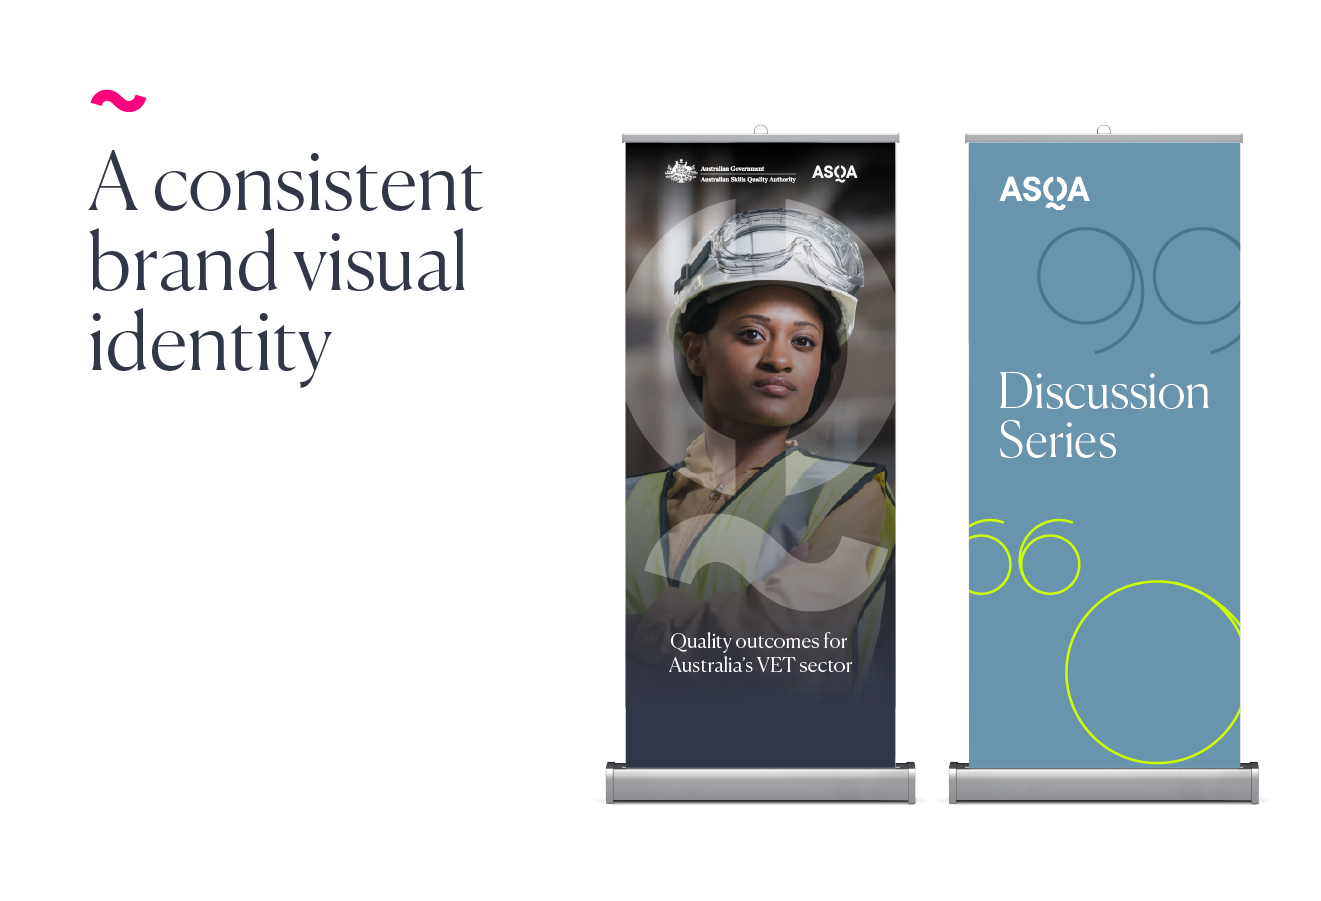 ASQA branded pull up event banners; text - A consistent brand visual identity